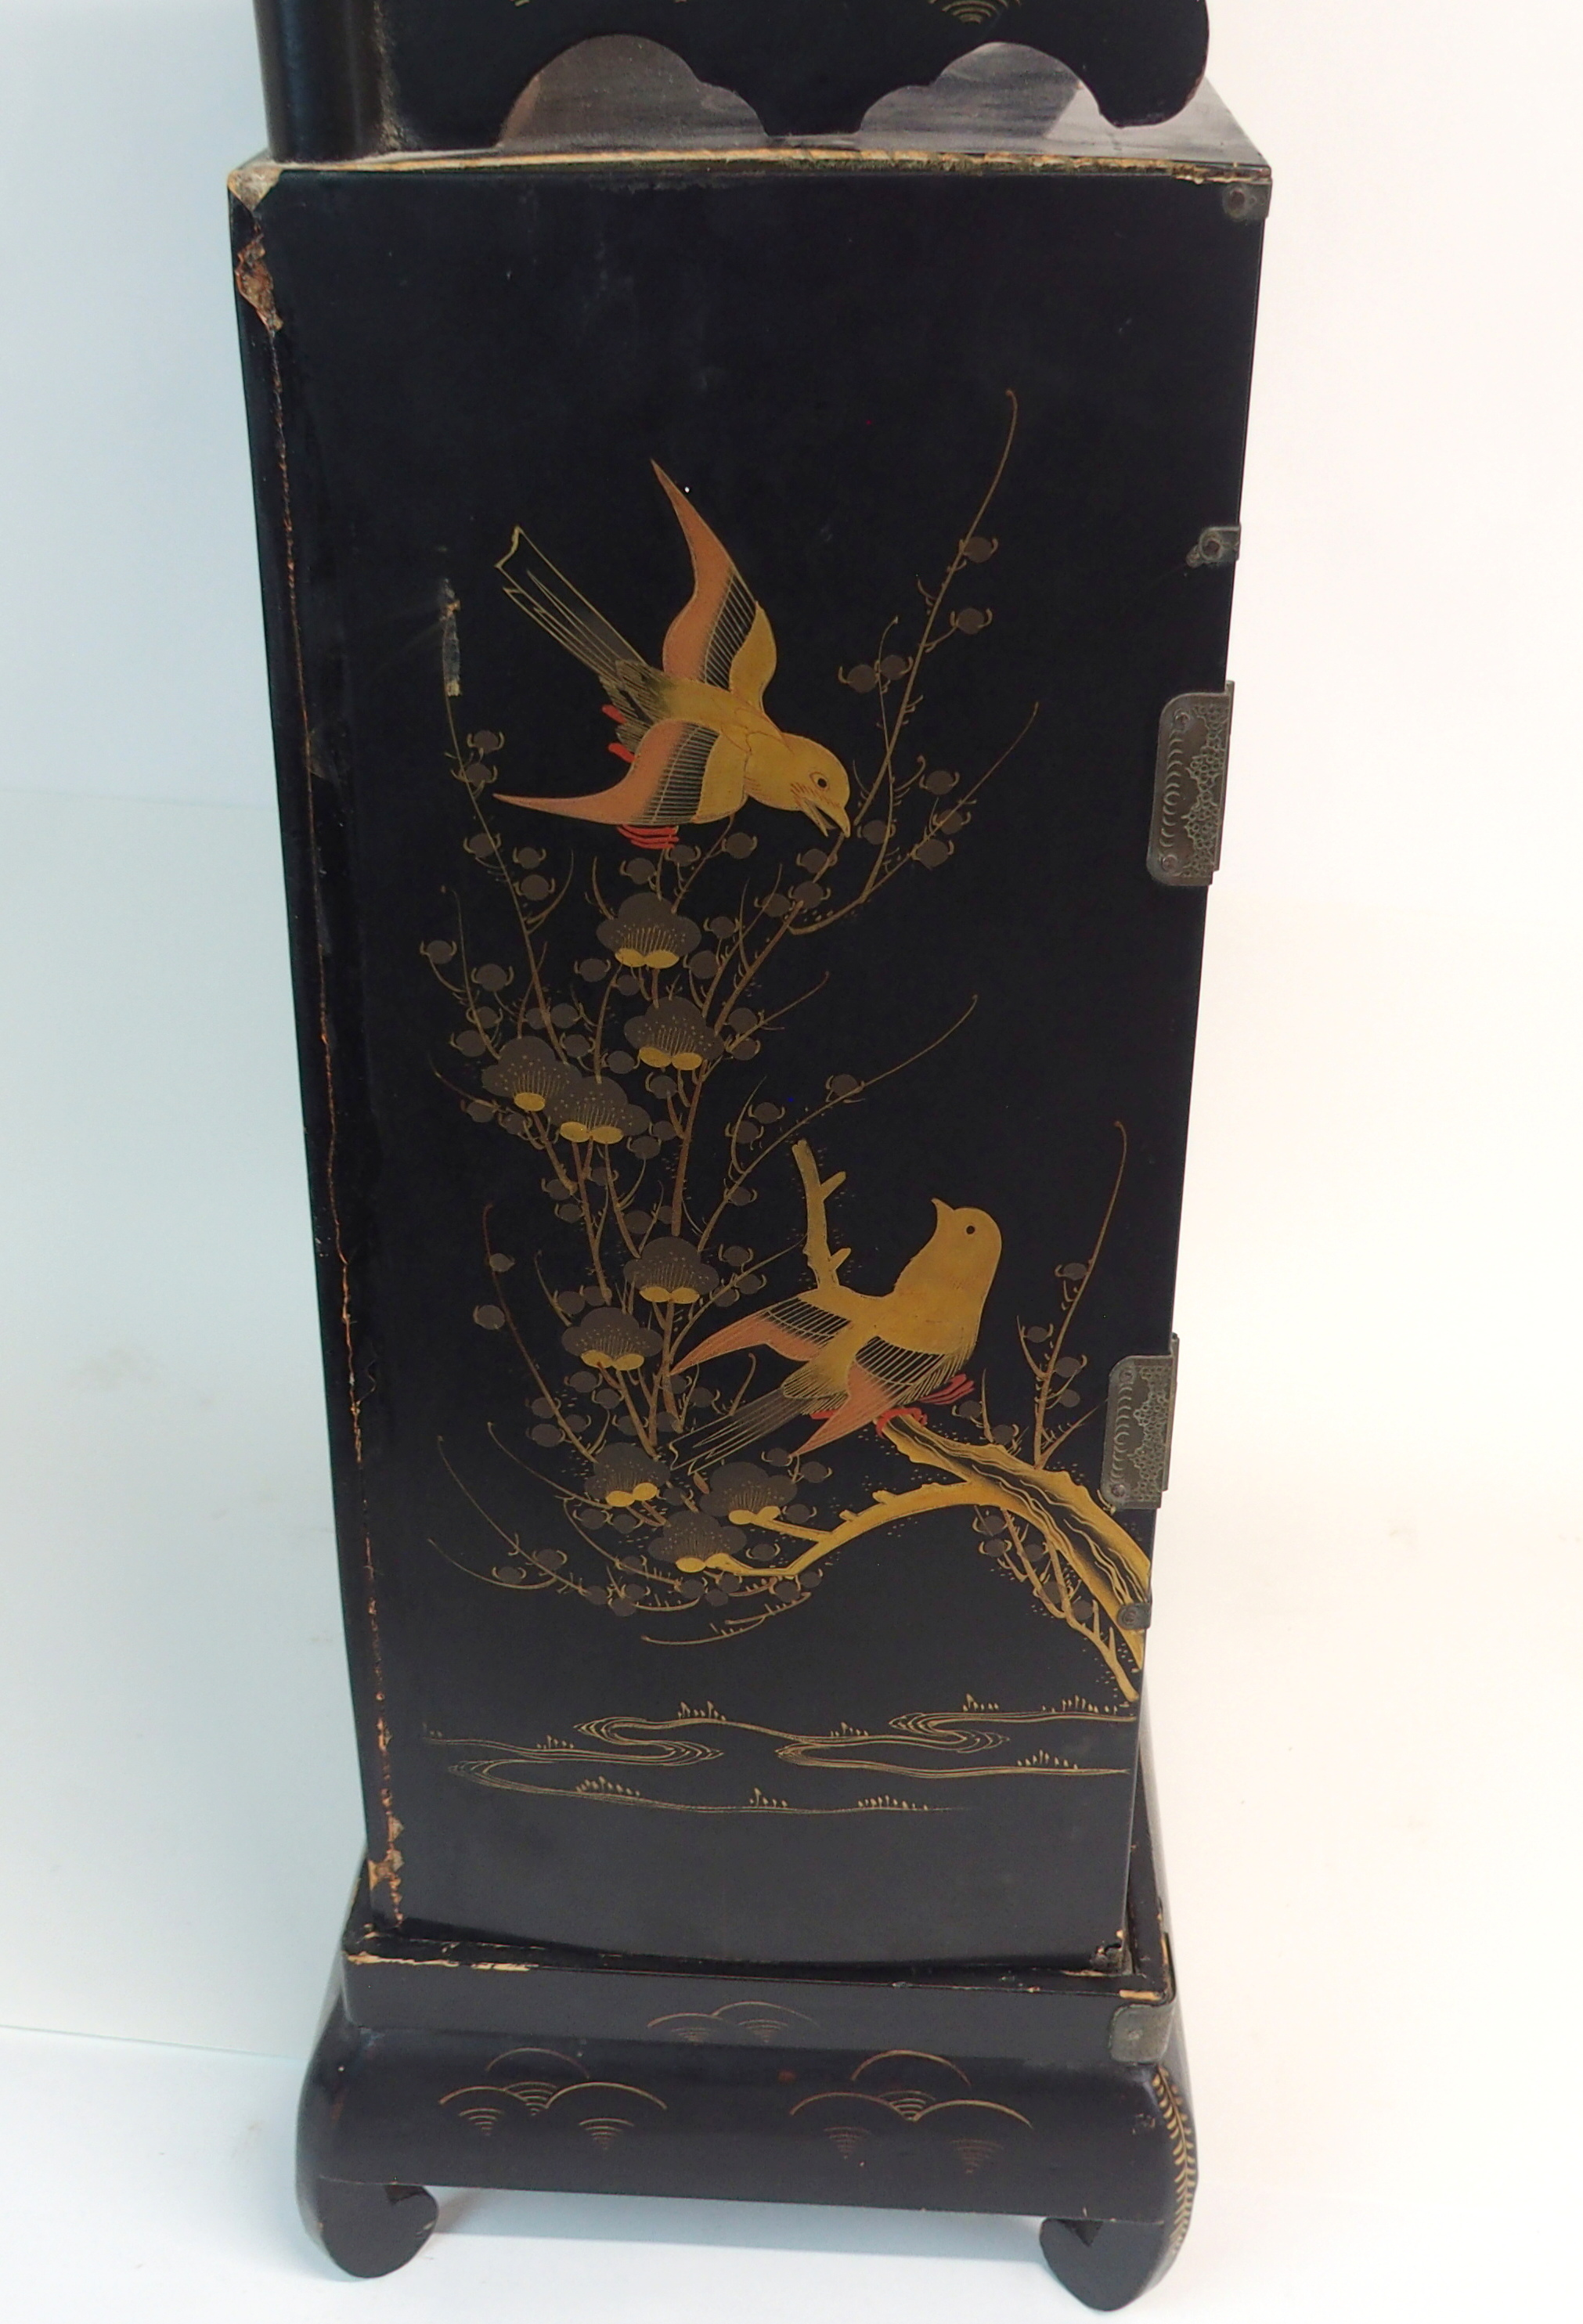 Lot 30 - A JAPANESE BLACK AND GOLD LACQUERED CABINET decorated with views of Mount Fuji, fitted with a pair